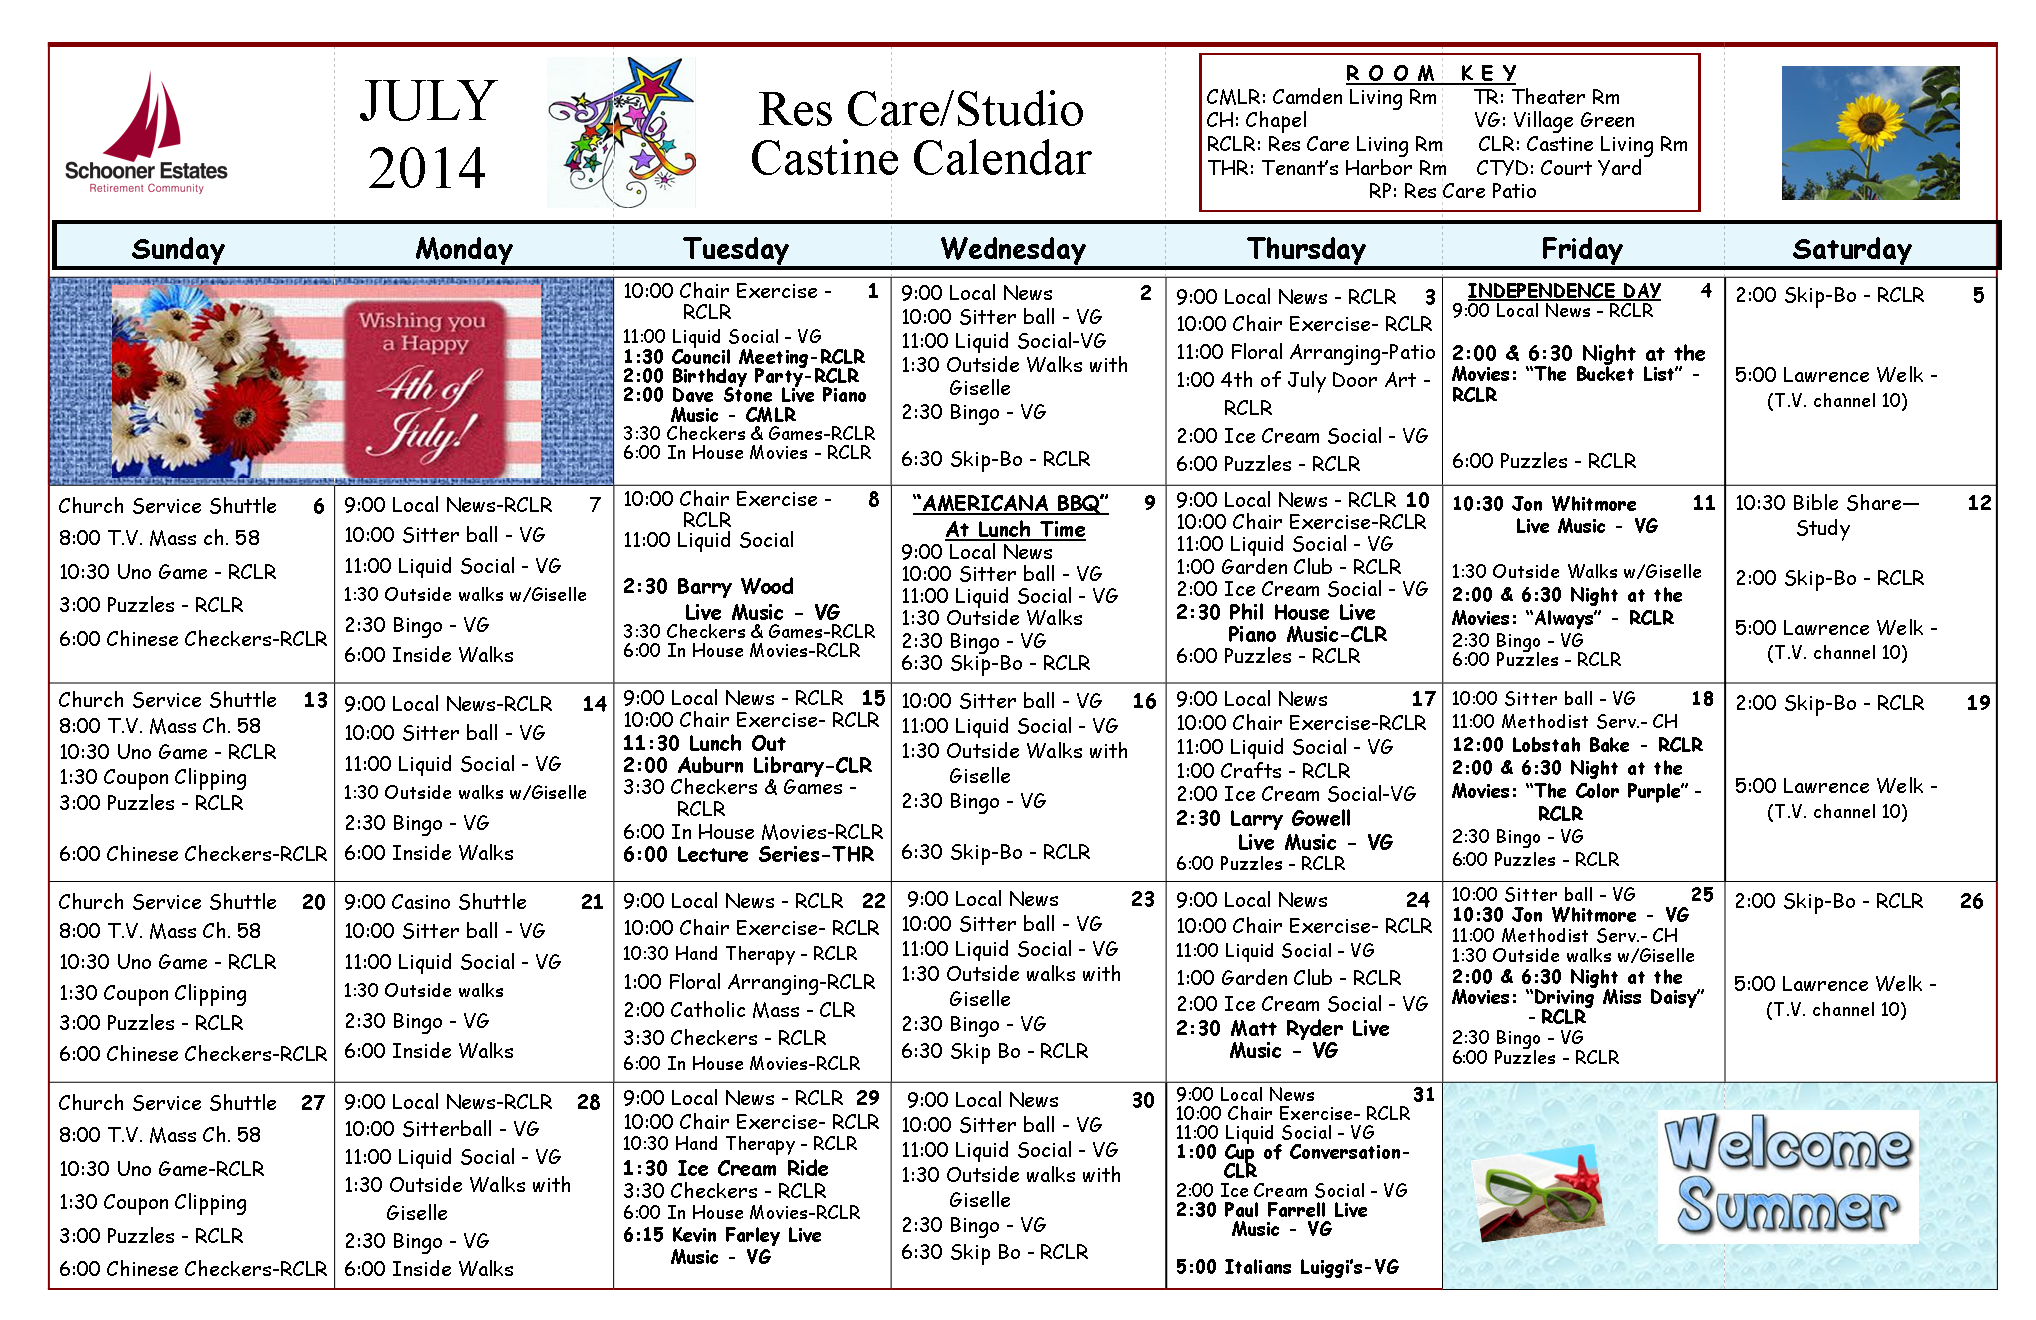 Res Care - Castine July 2014 Calendar